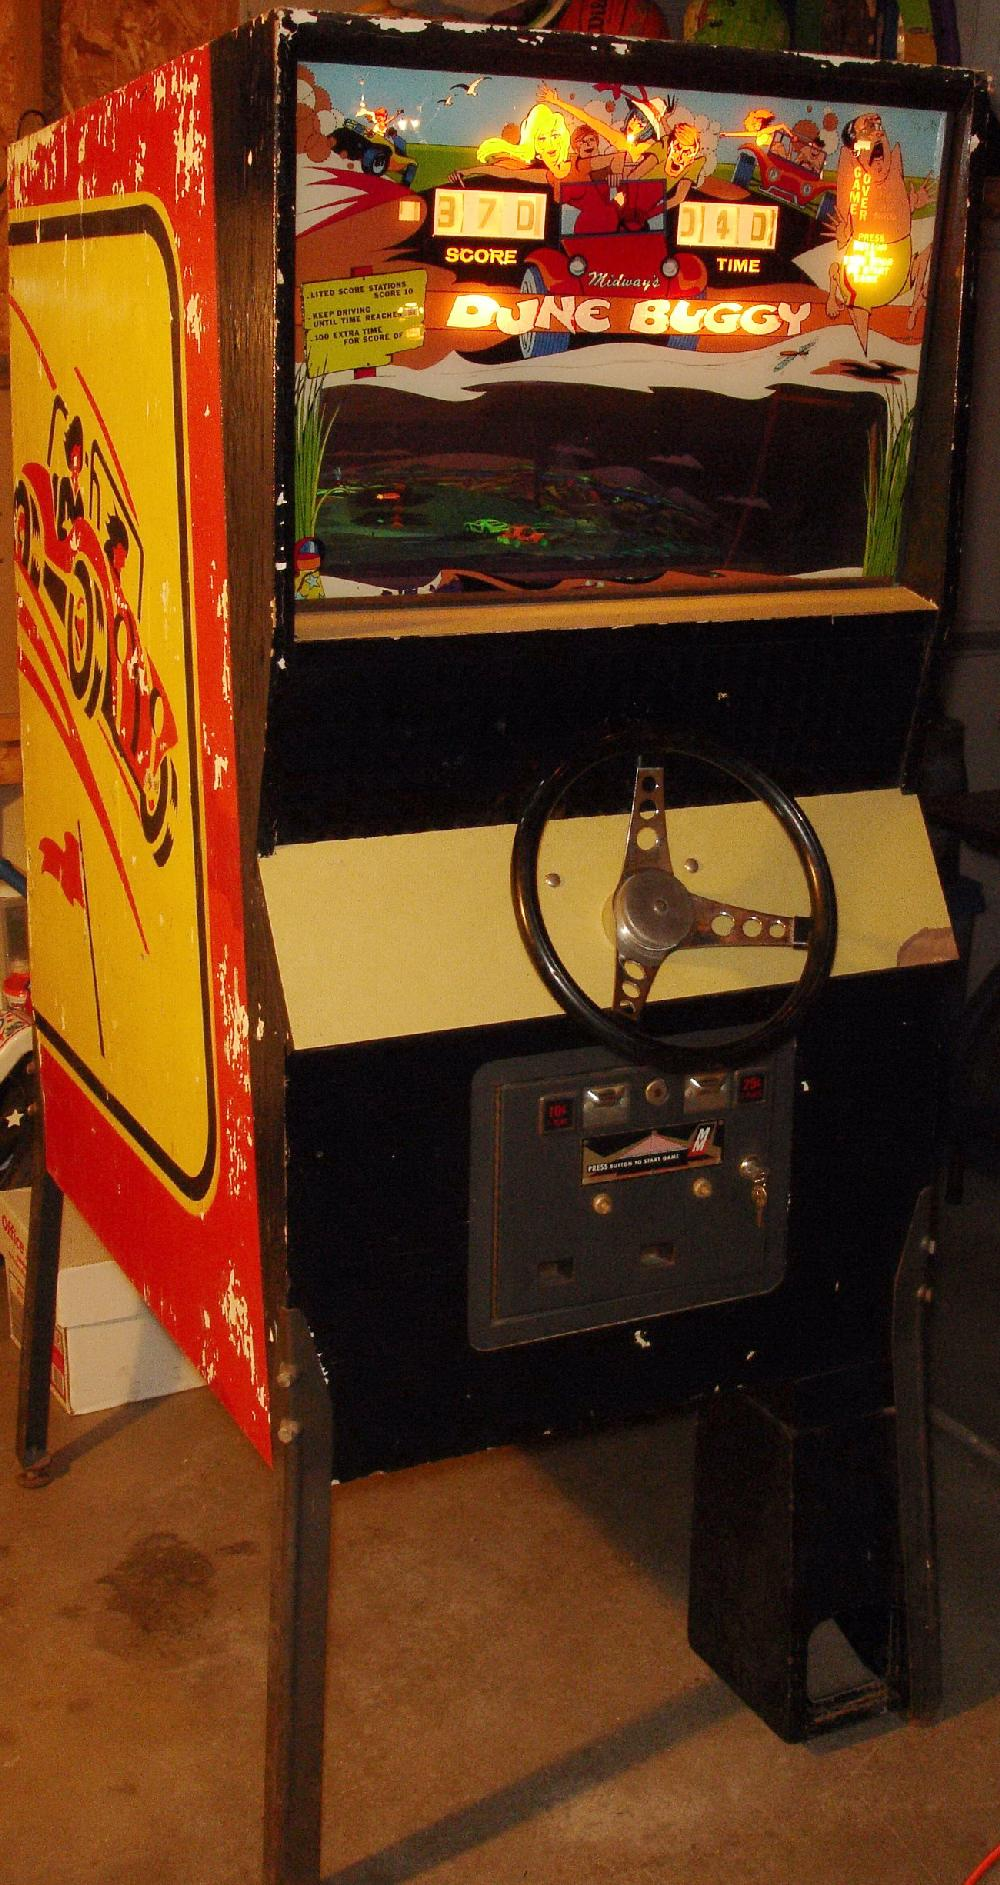 Midway Dune Buggy 1972 coin operated arcade driving game